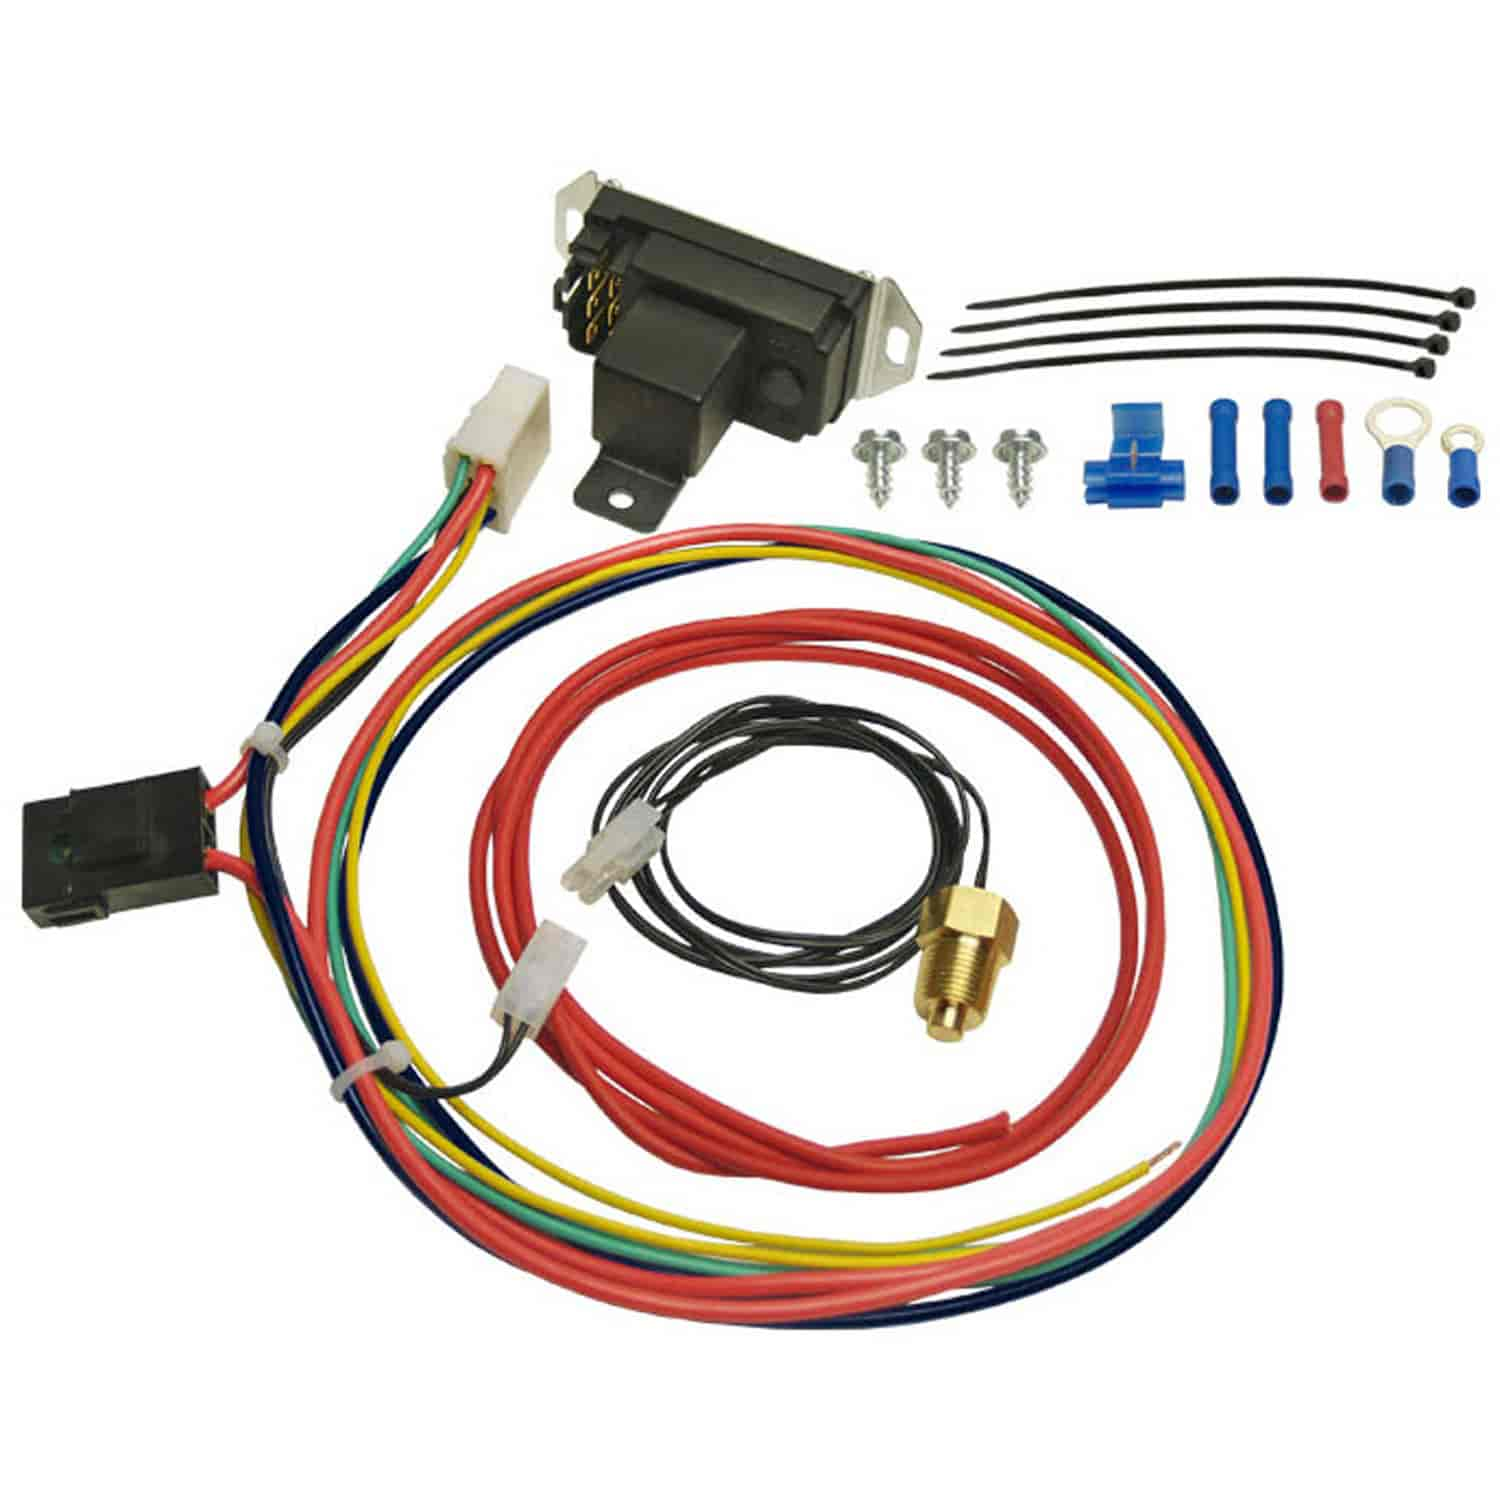 259 16749_1 jegs hot rod wiring harness wiring diagrams VW Wiring Harness Kits at aneh.co